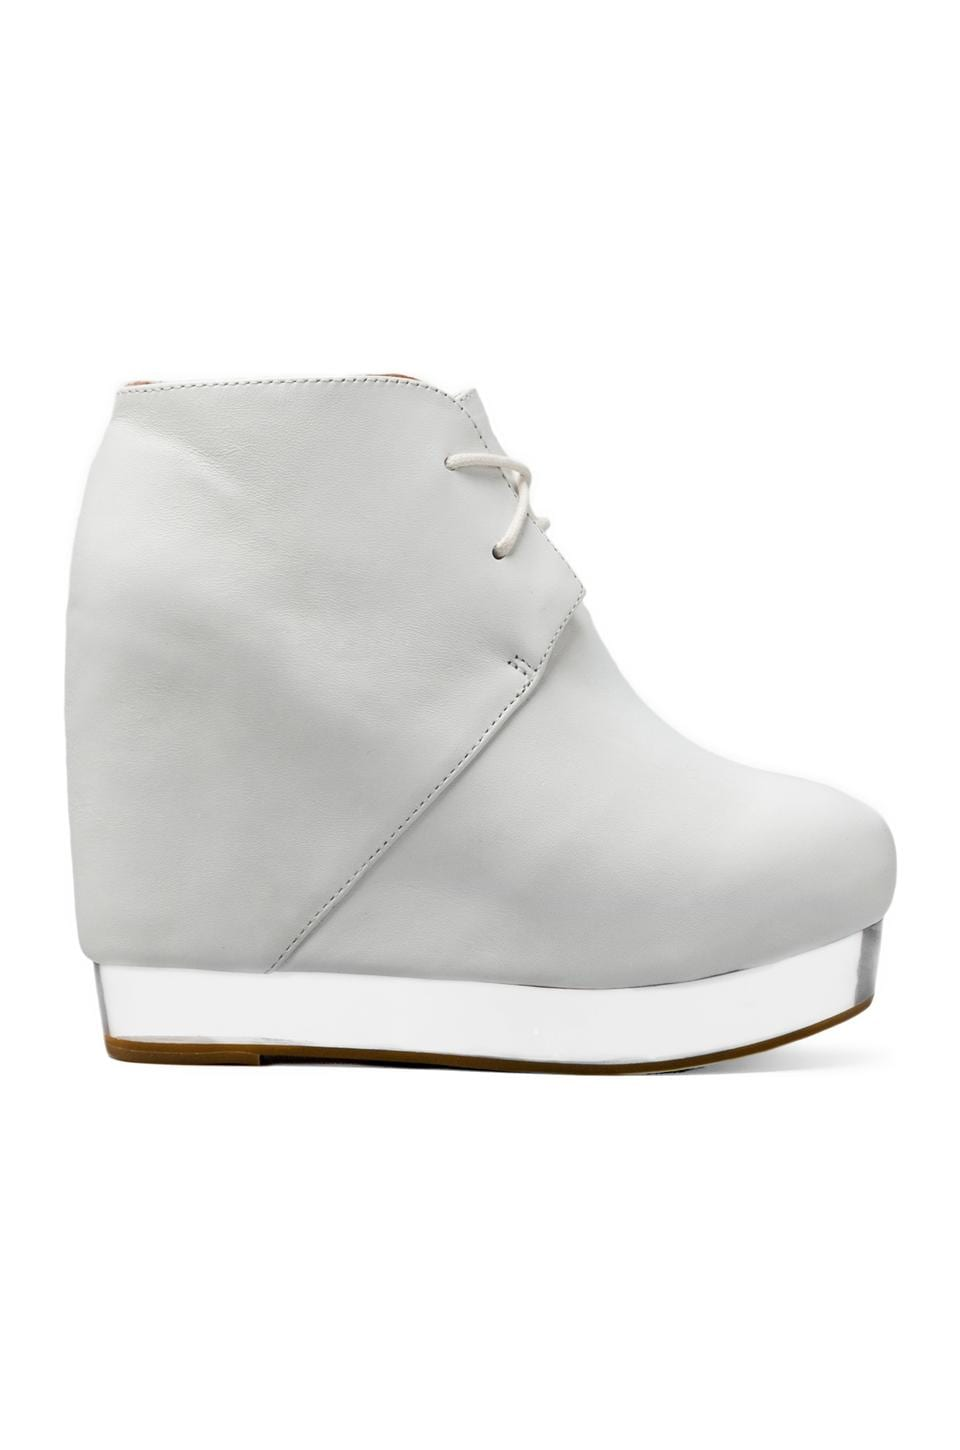 Jeffrey Campbell Alexis in White/Clear